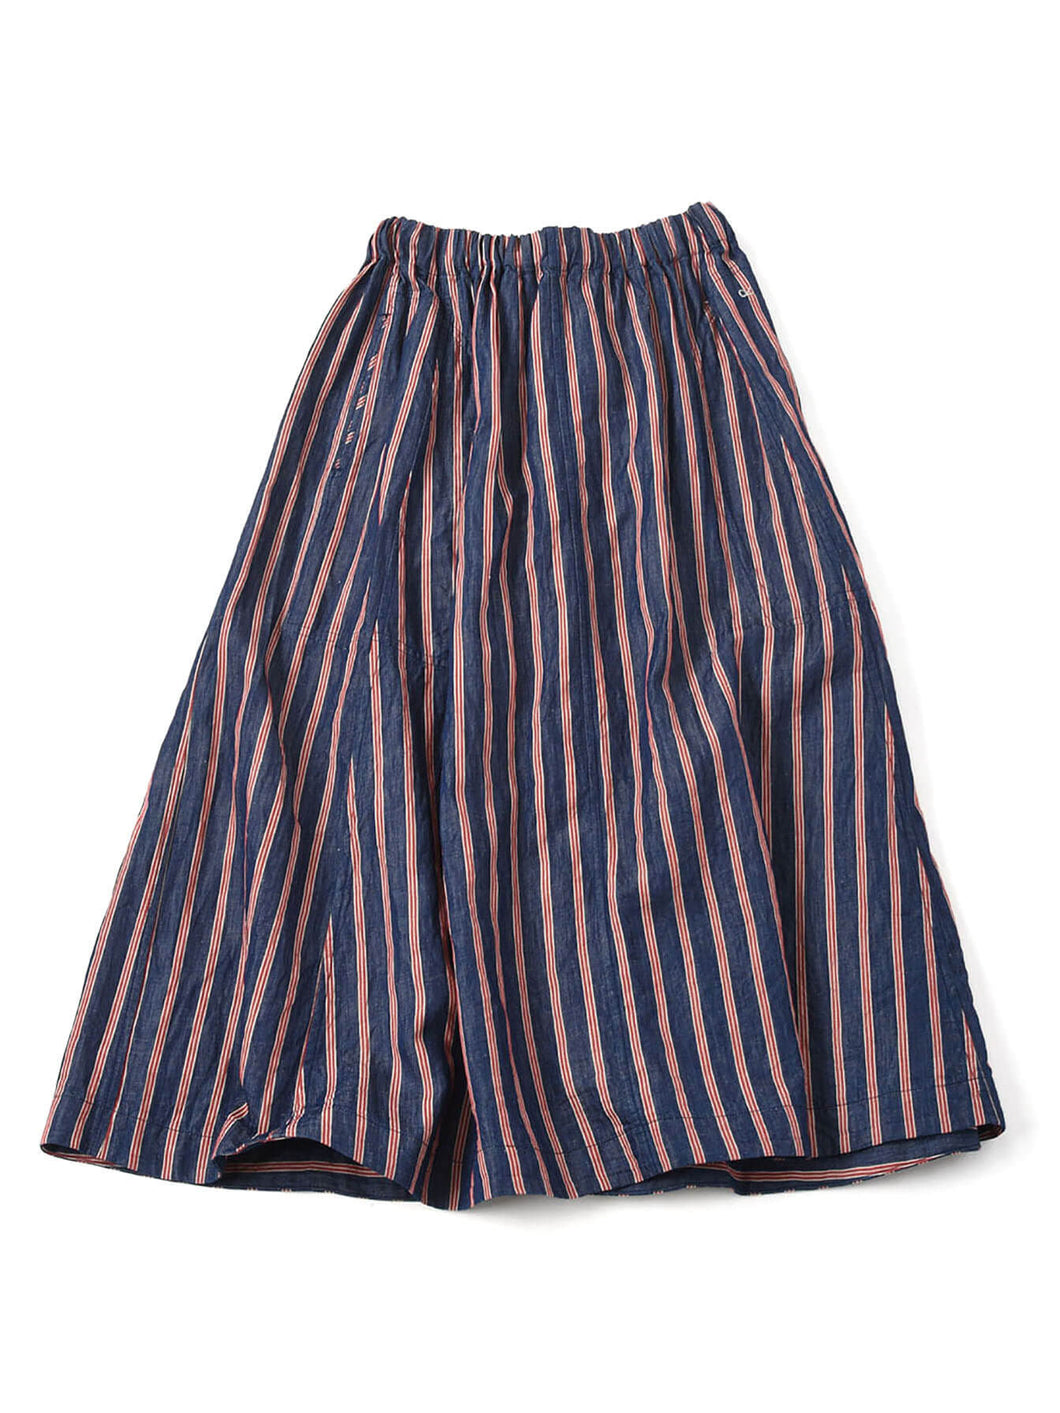 Cotton Linen Goma Denim Skirt in tricolor hickory